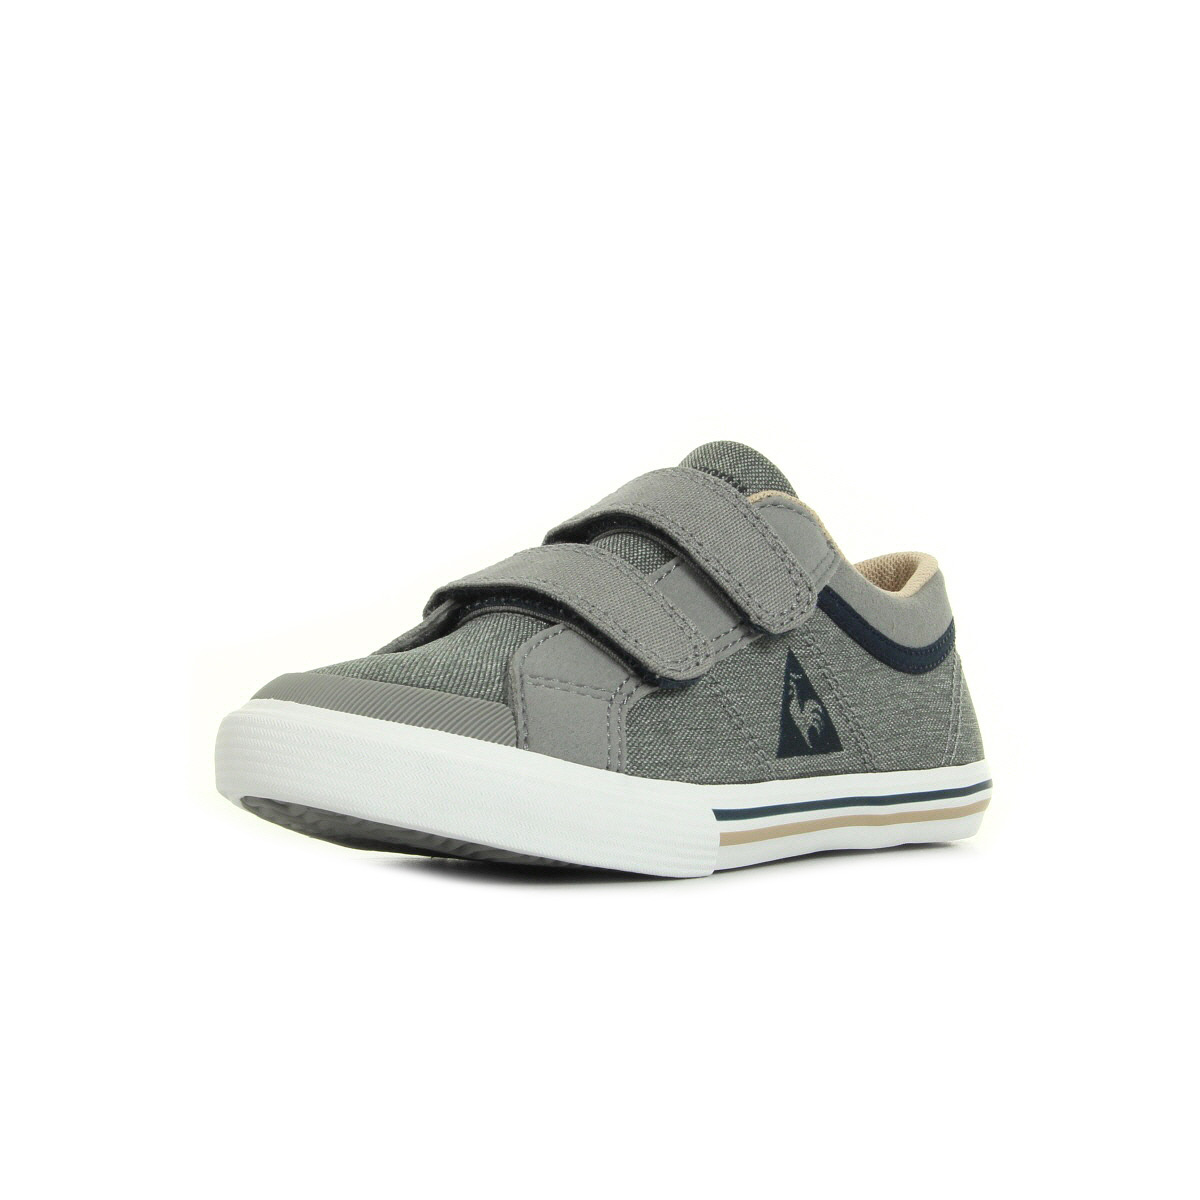 Baskets Le Coq Sportif Saint Gaetan Ps Craft 8Ueqdl4r